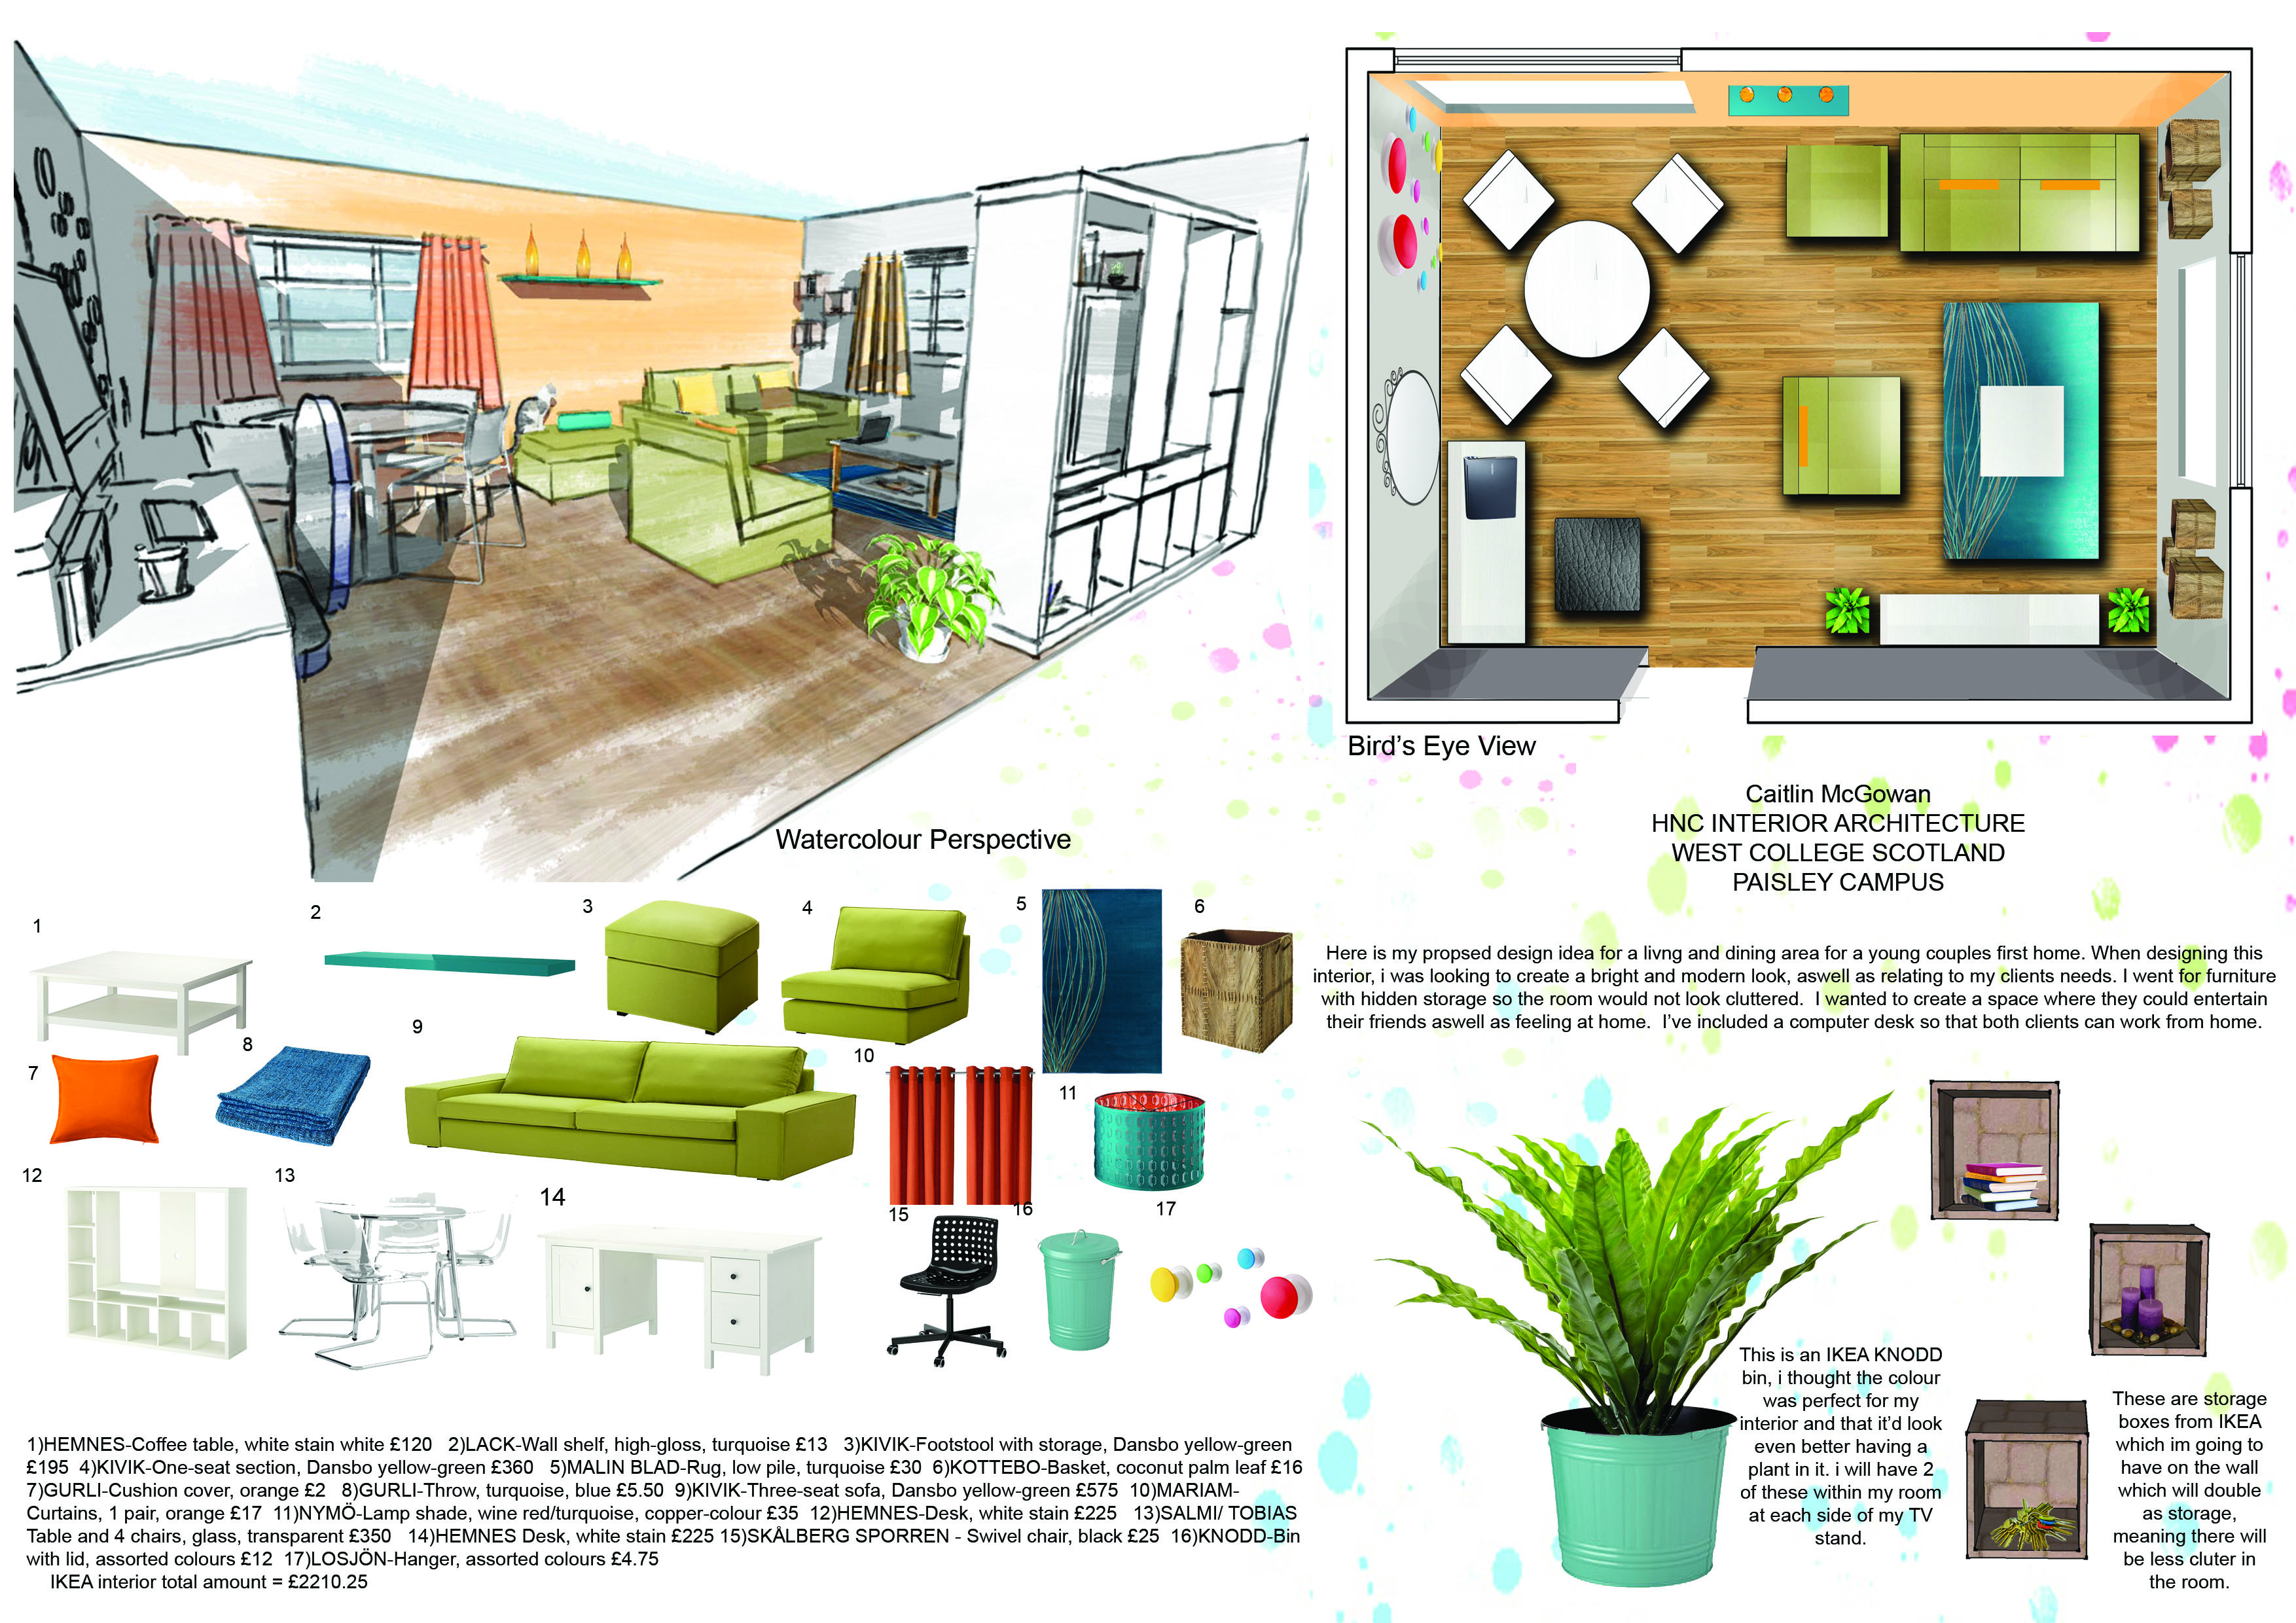 Caitzmcgowanblog Interior Design Student This course enables students to explore their interest and creativity in the field of interior design. caitzmcgowanblog interior design student